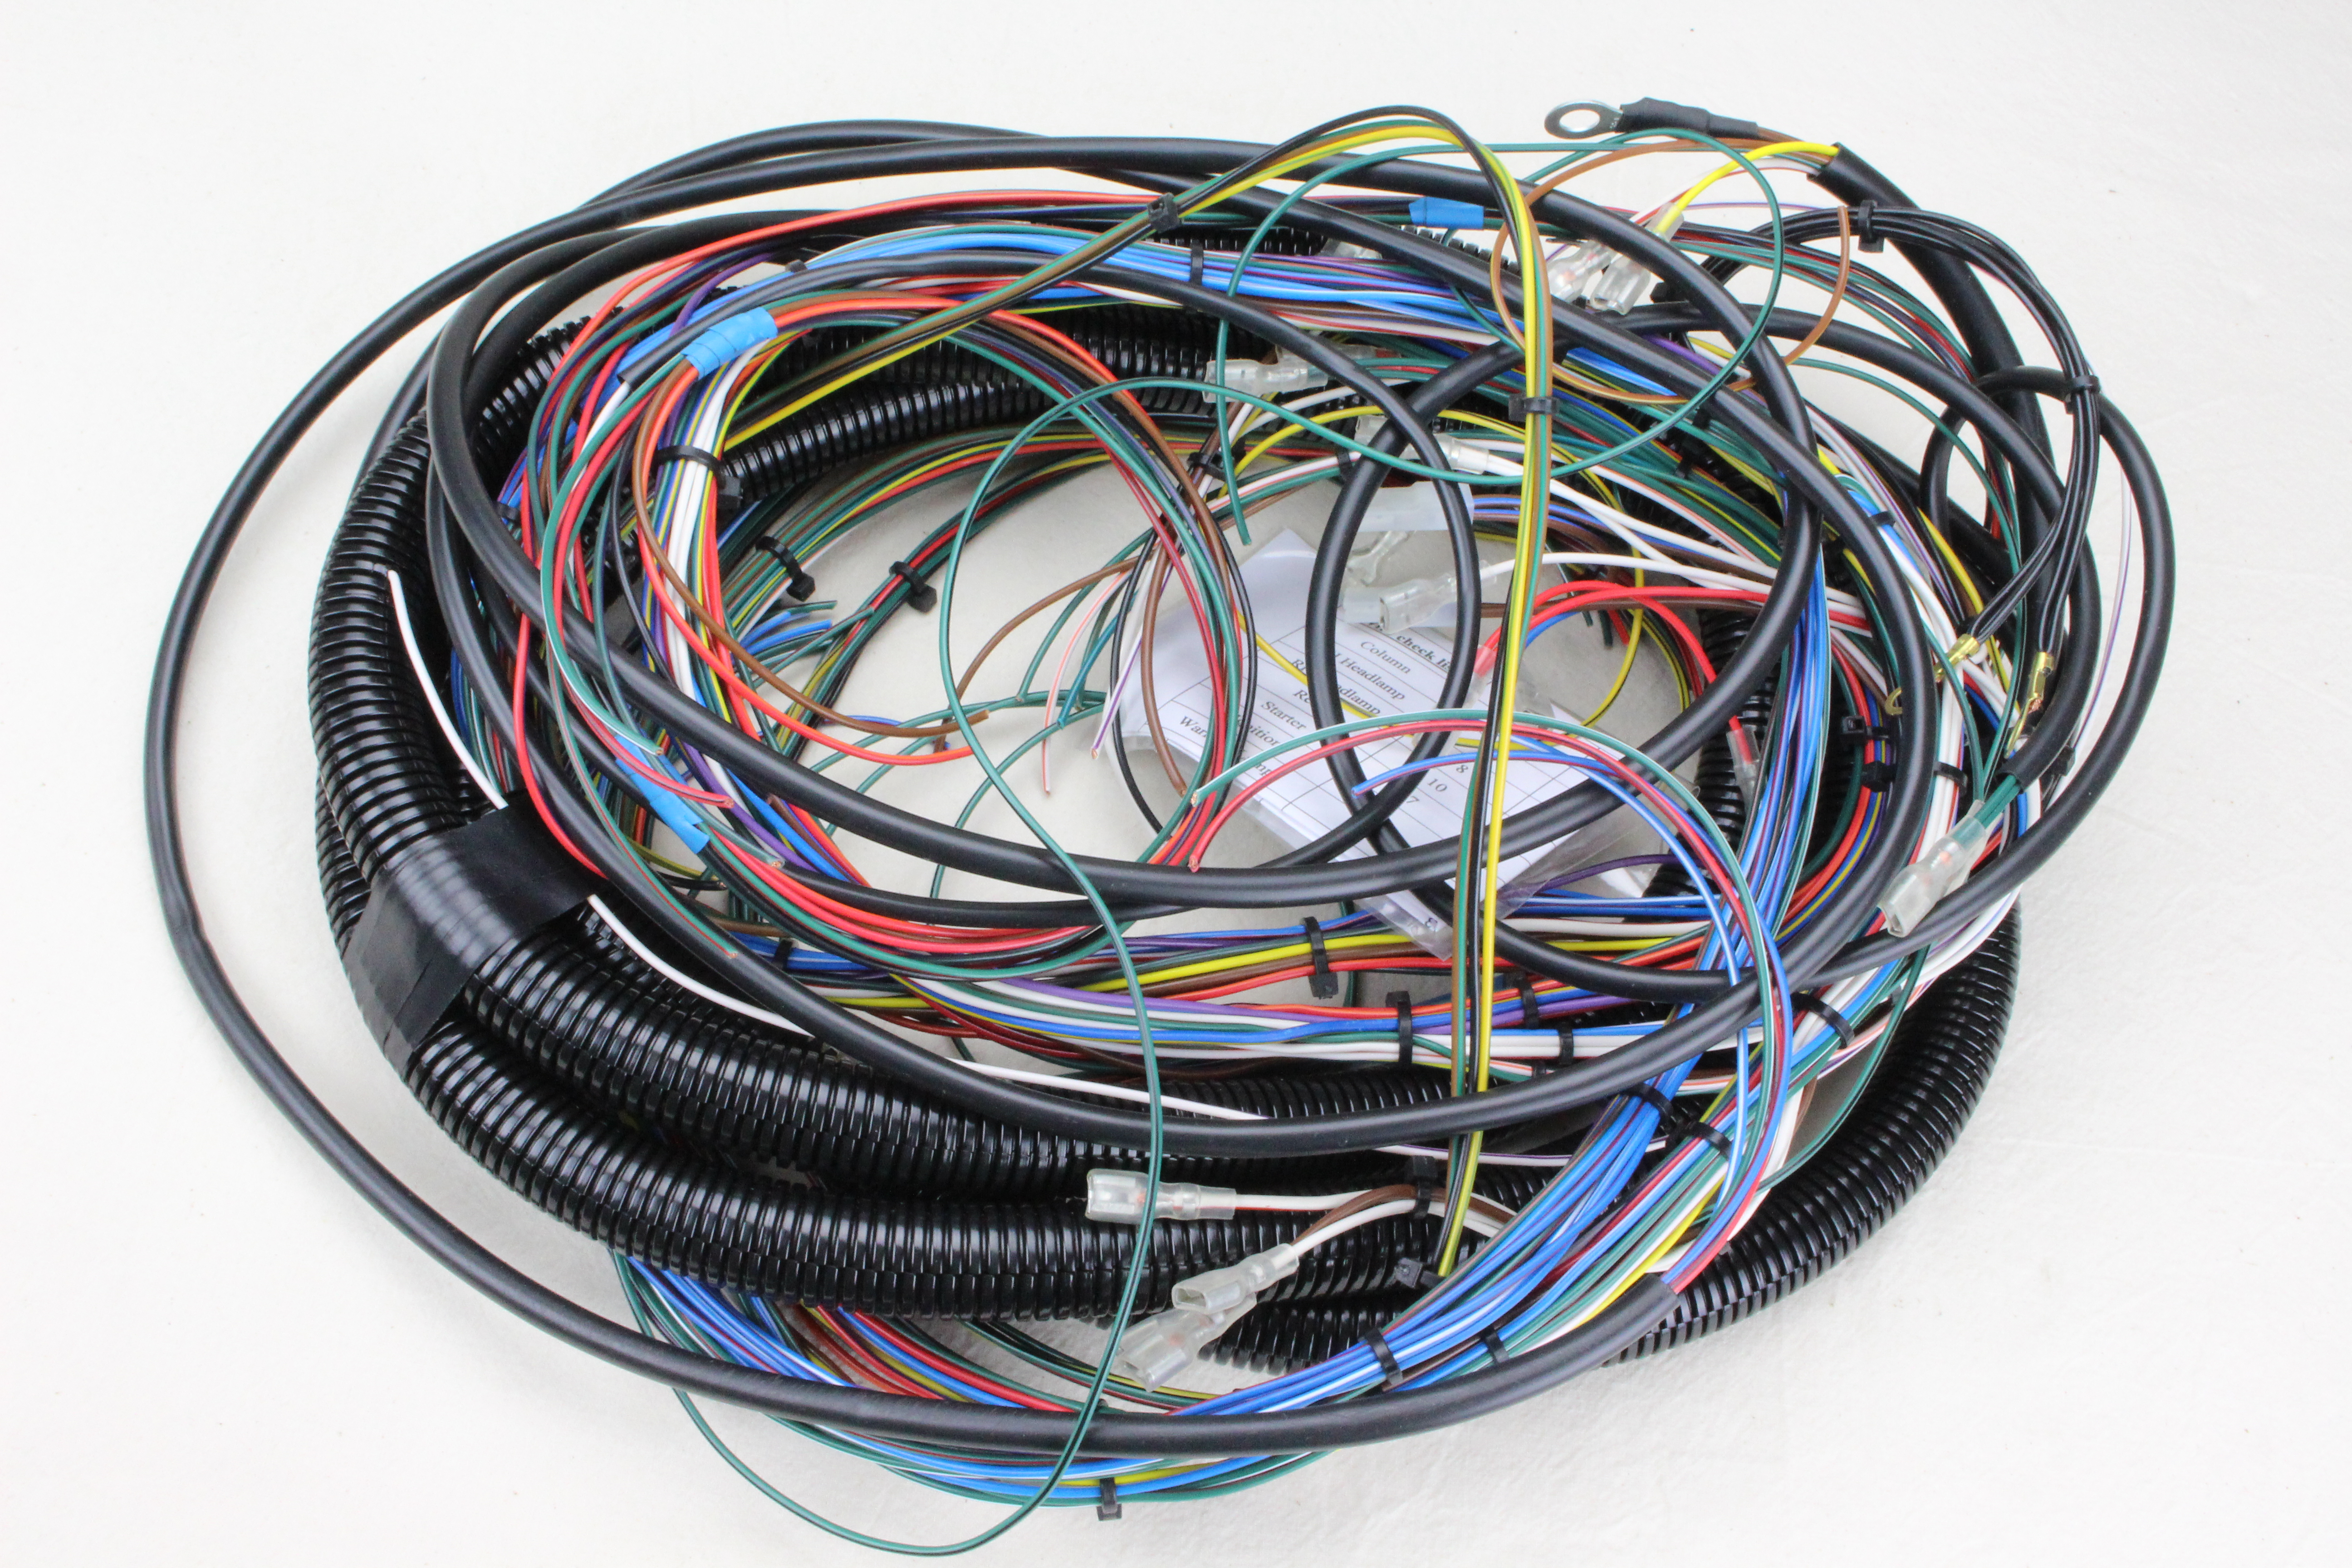 Wiring loom, built with motorsport spec anti vibration cable providing excellent service life with reduced bulk and weight. Adaptable to all Triking models